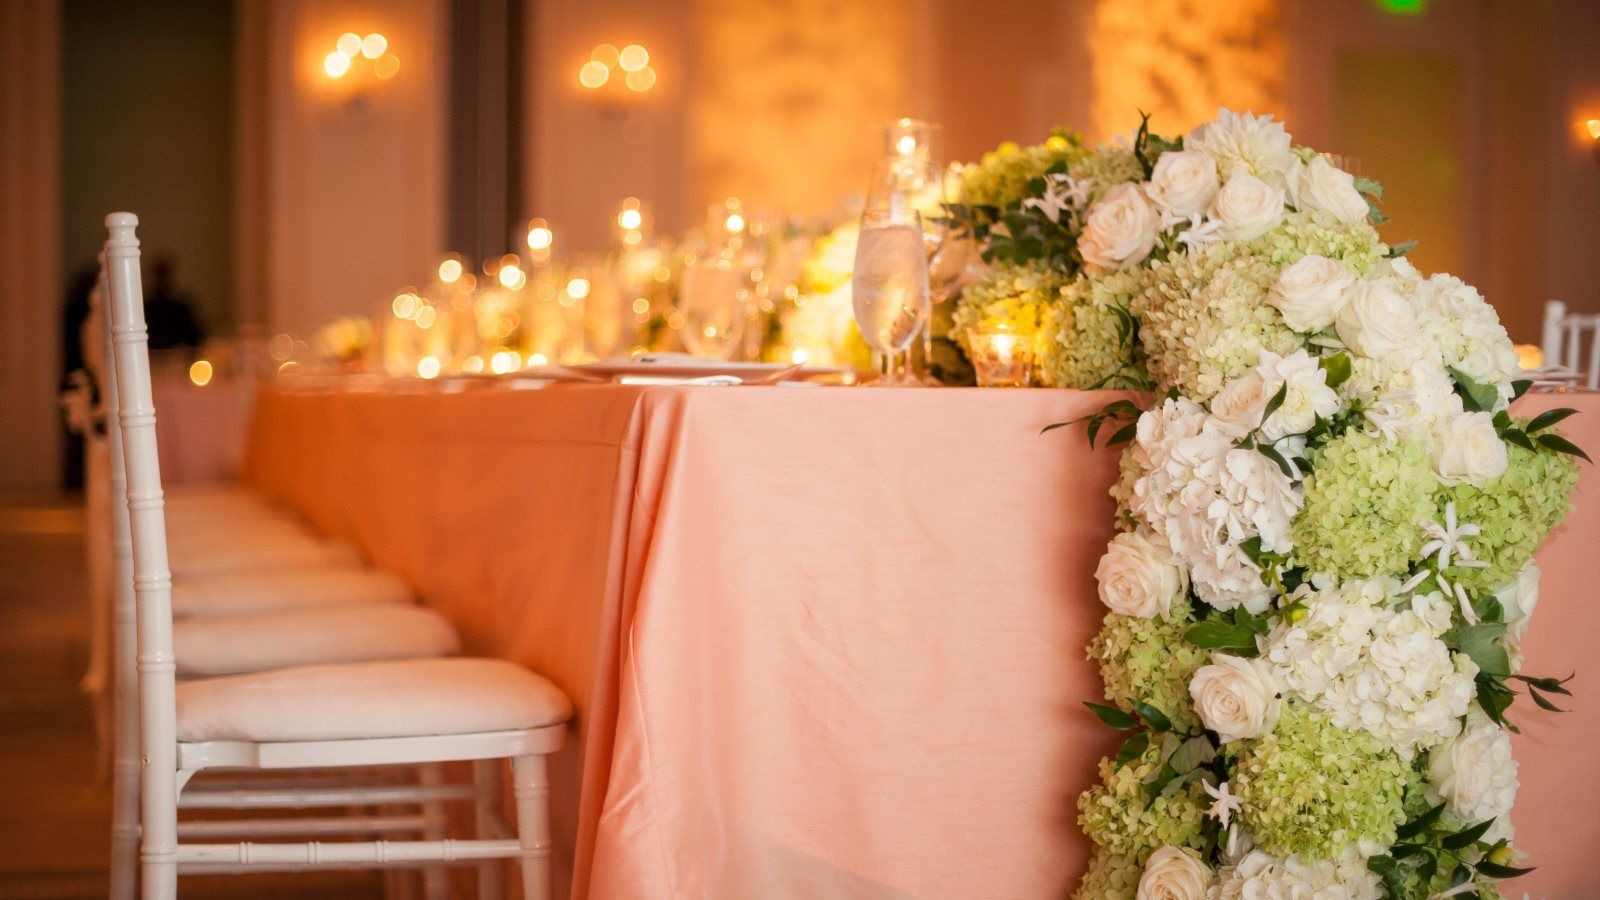 The St. Regis Atlanta Wedding Venue